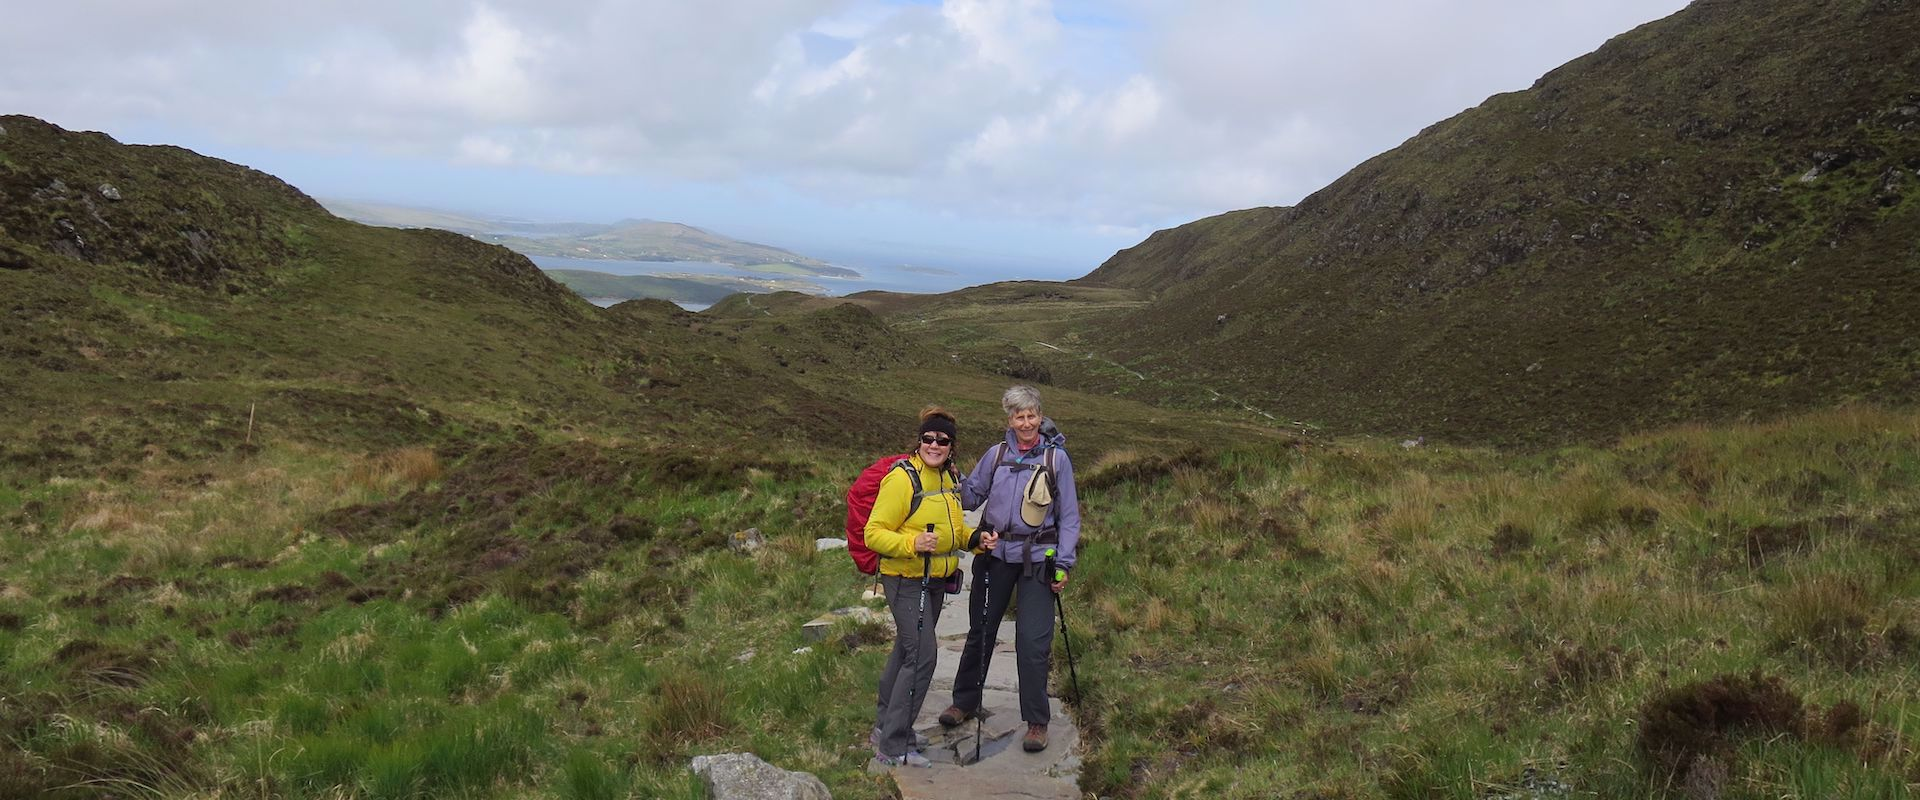 Women's hiking trip in Ireland